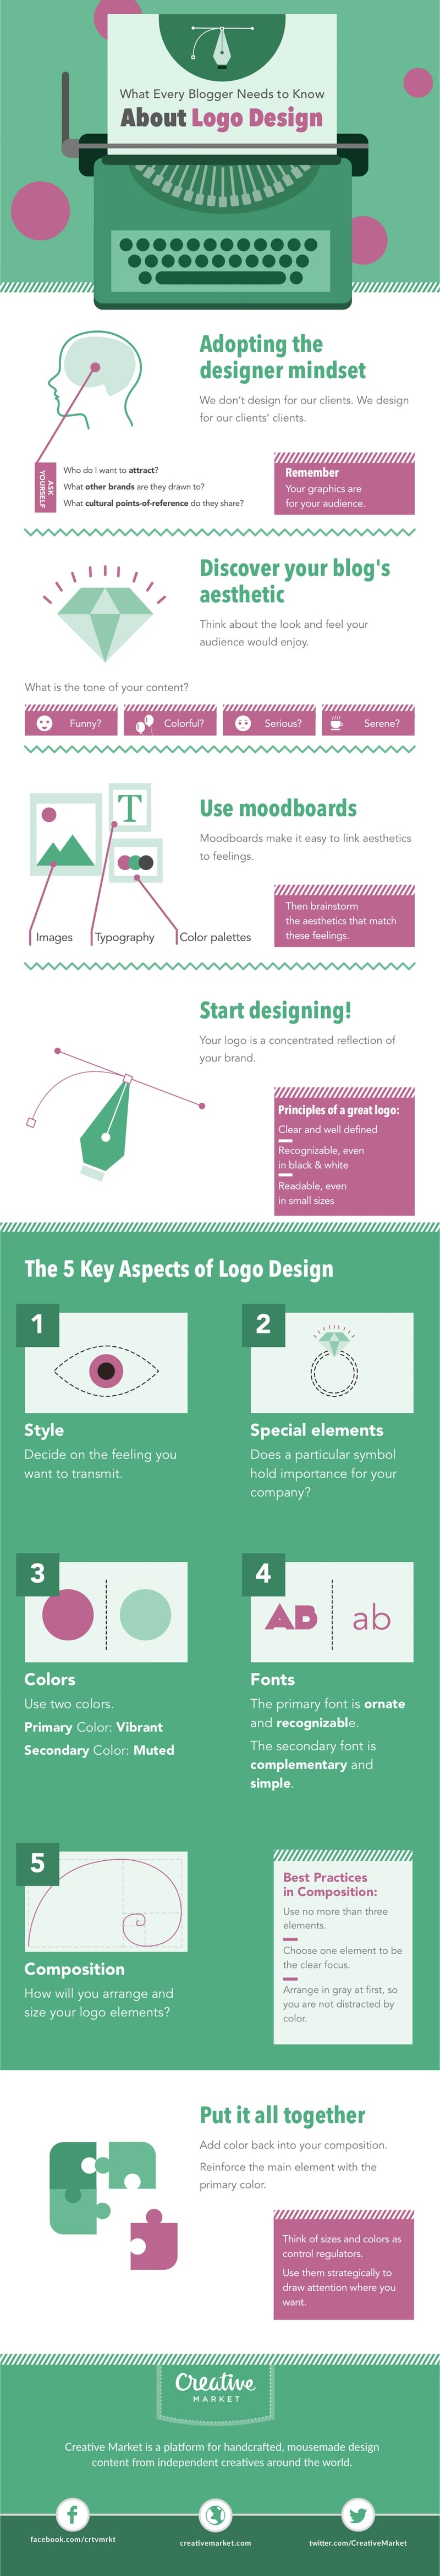 What Every Blogger Needs to Know About Logo Design - #infographic